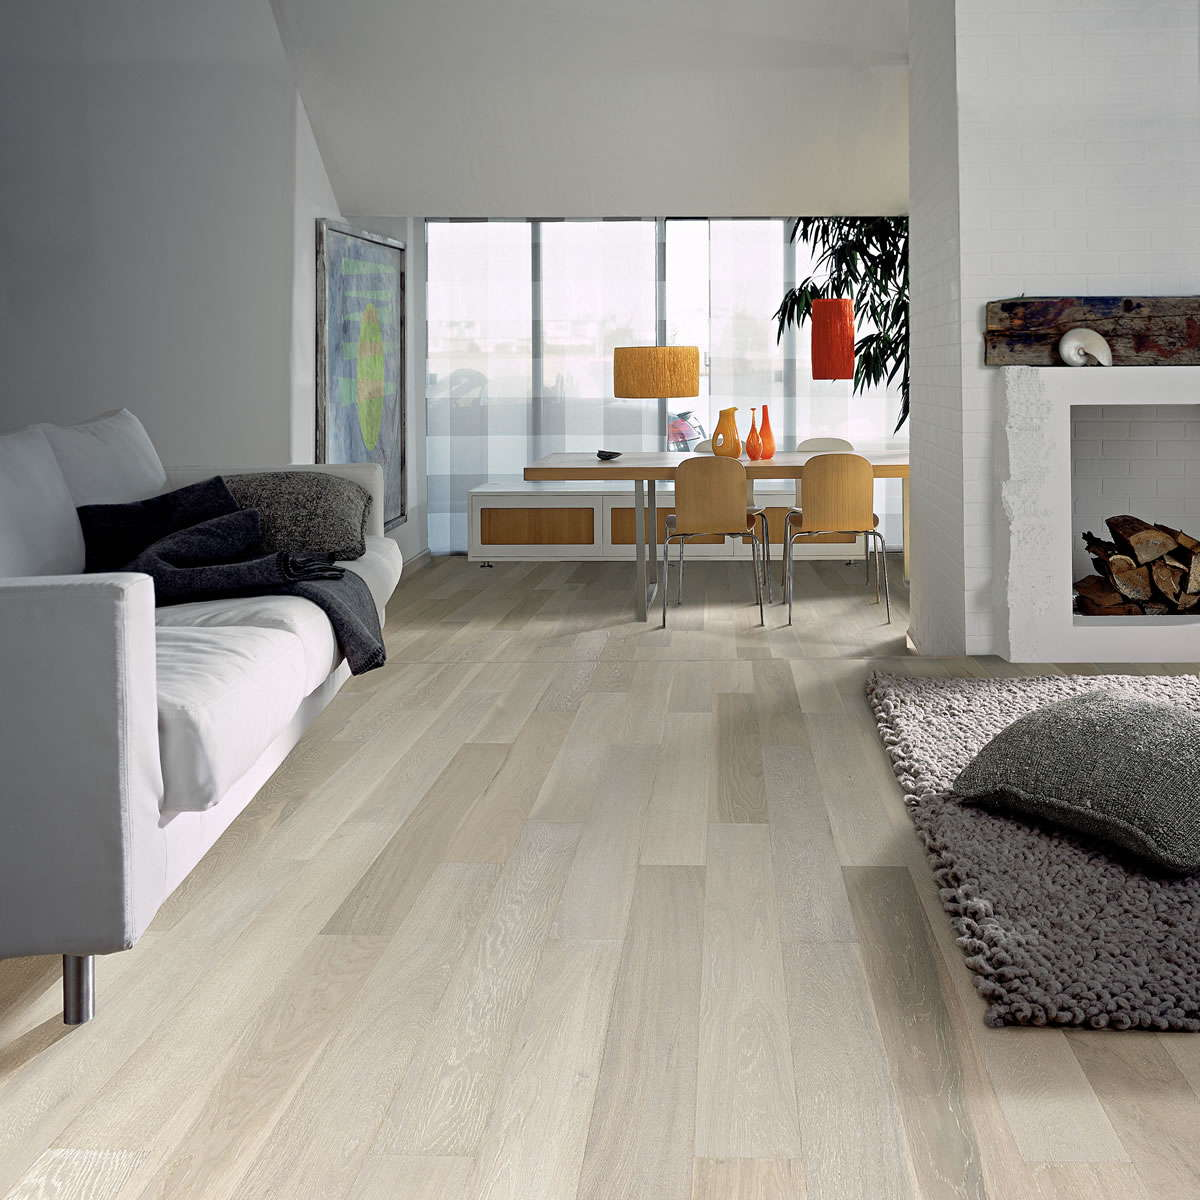 encourage your plank and on flooring images within floor hardwood interior kahrs pinterest ajrogersandsons hrs floors be inspired by creativity k wide wood best